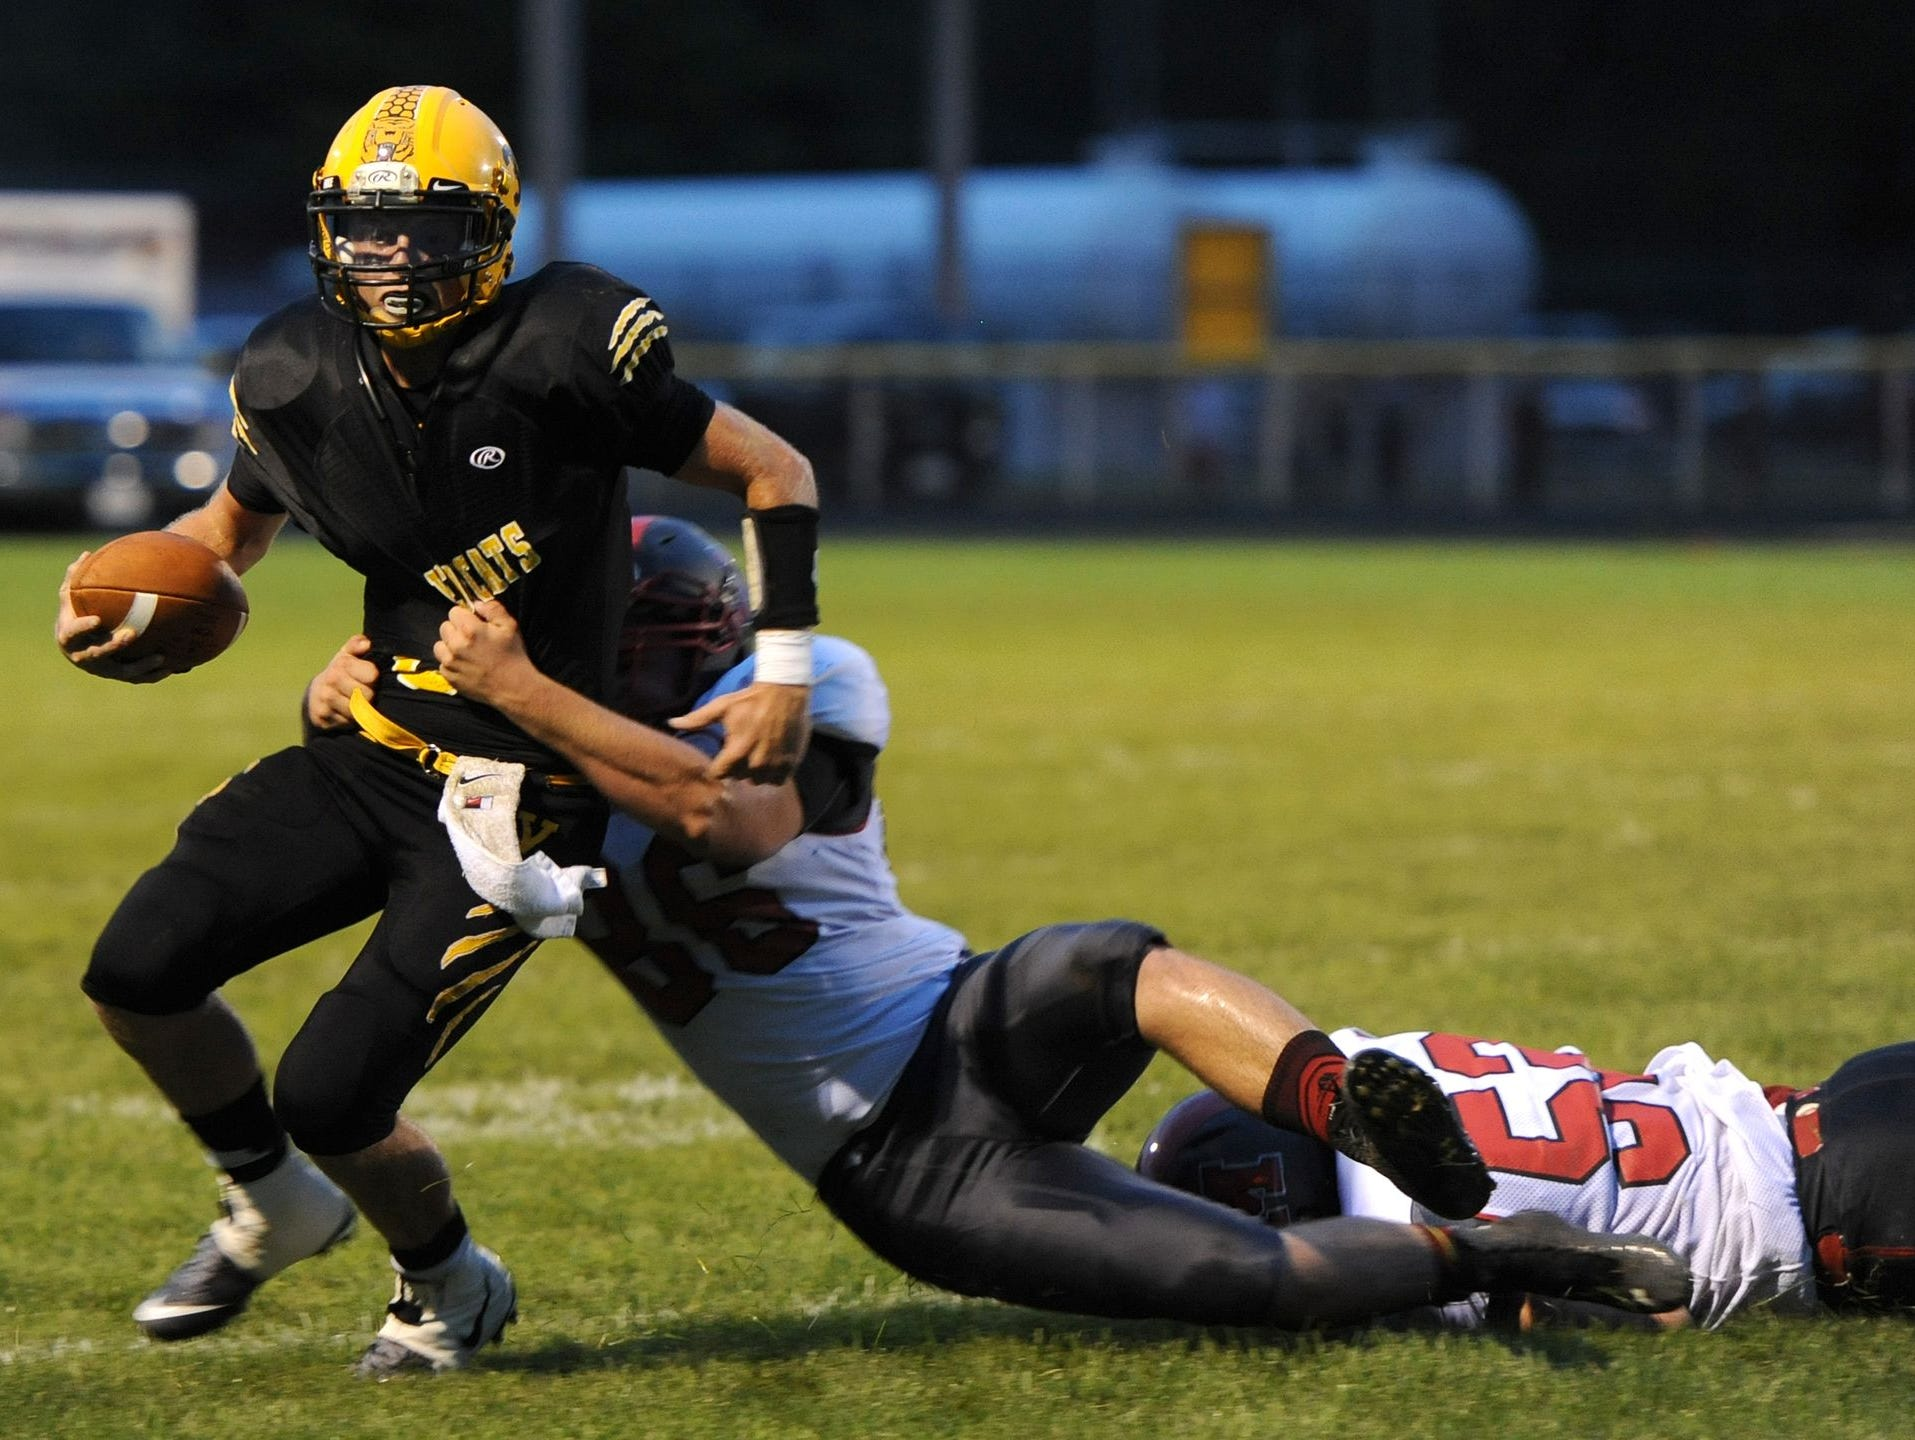 Paint Valley's Anthony McFadden breaks a tackle earlier this season against Minford. McFadden was named the 2015 Gazette Offensive Player of the Year.